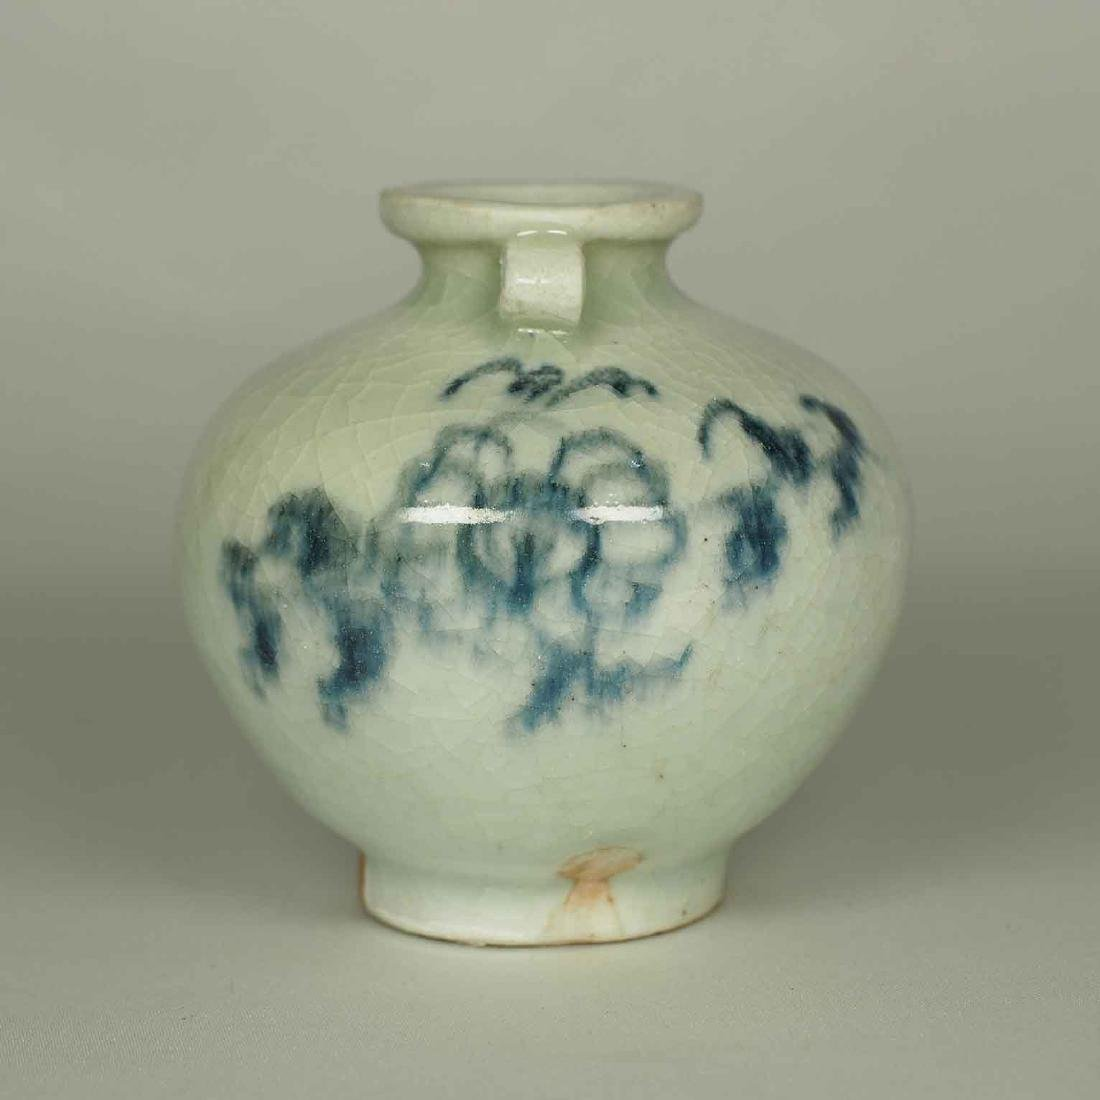 Jarlet with Chrysanthemum Flower, Yuan Dynasty